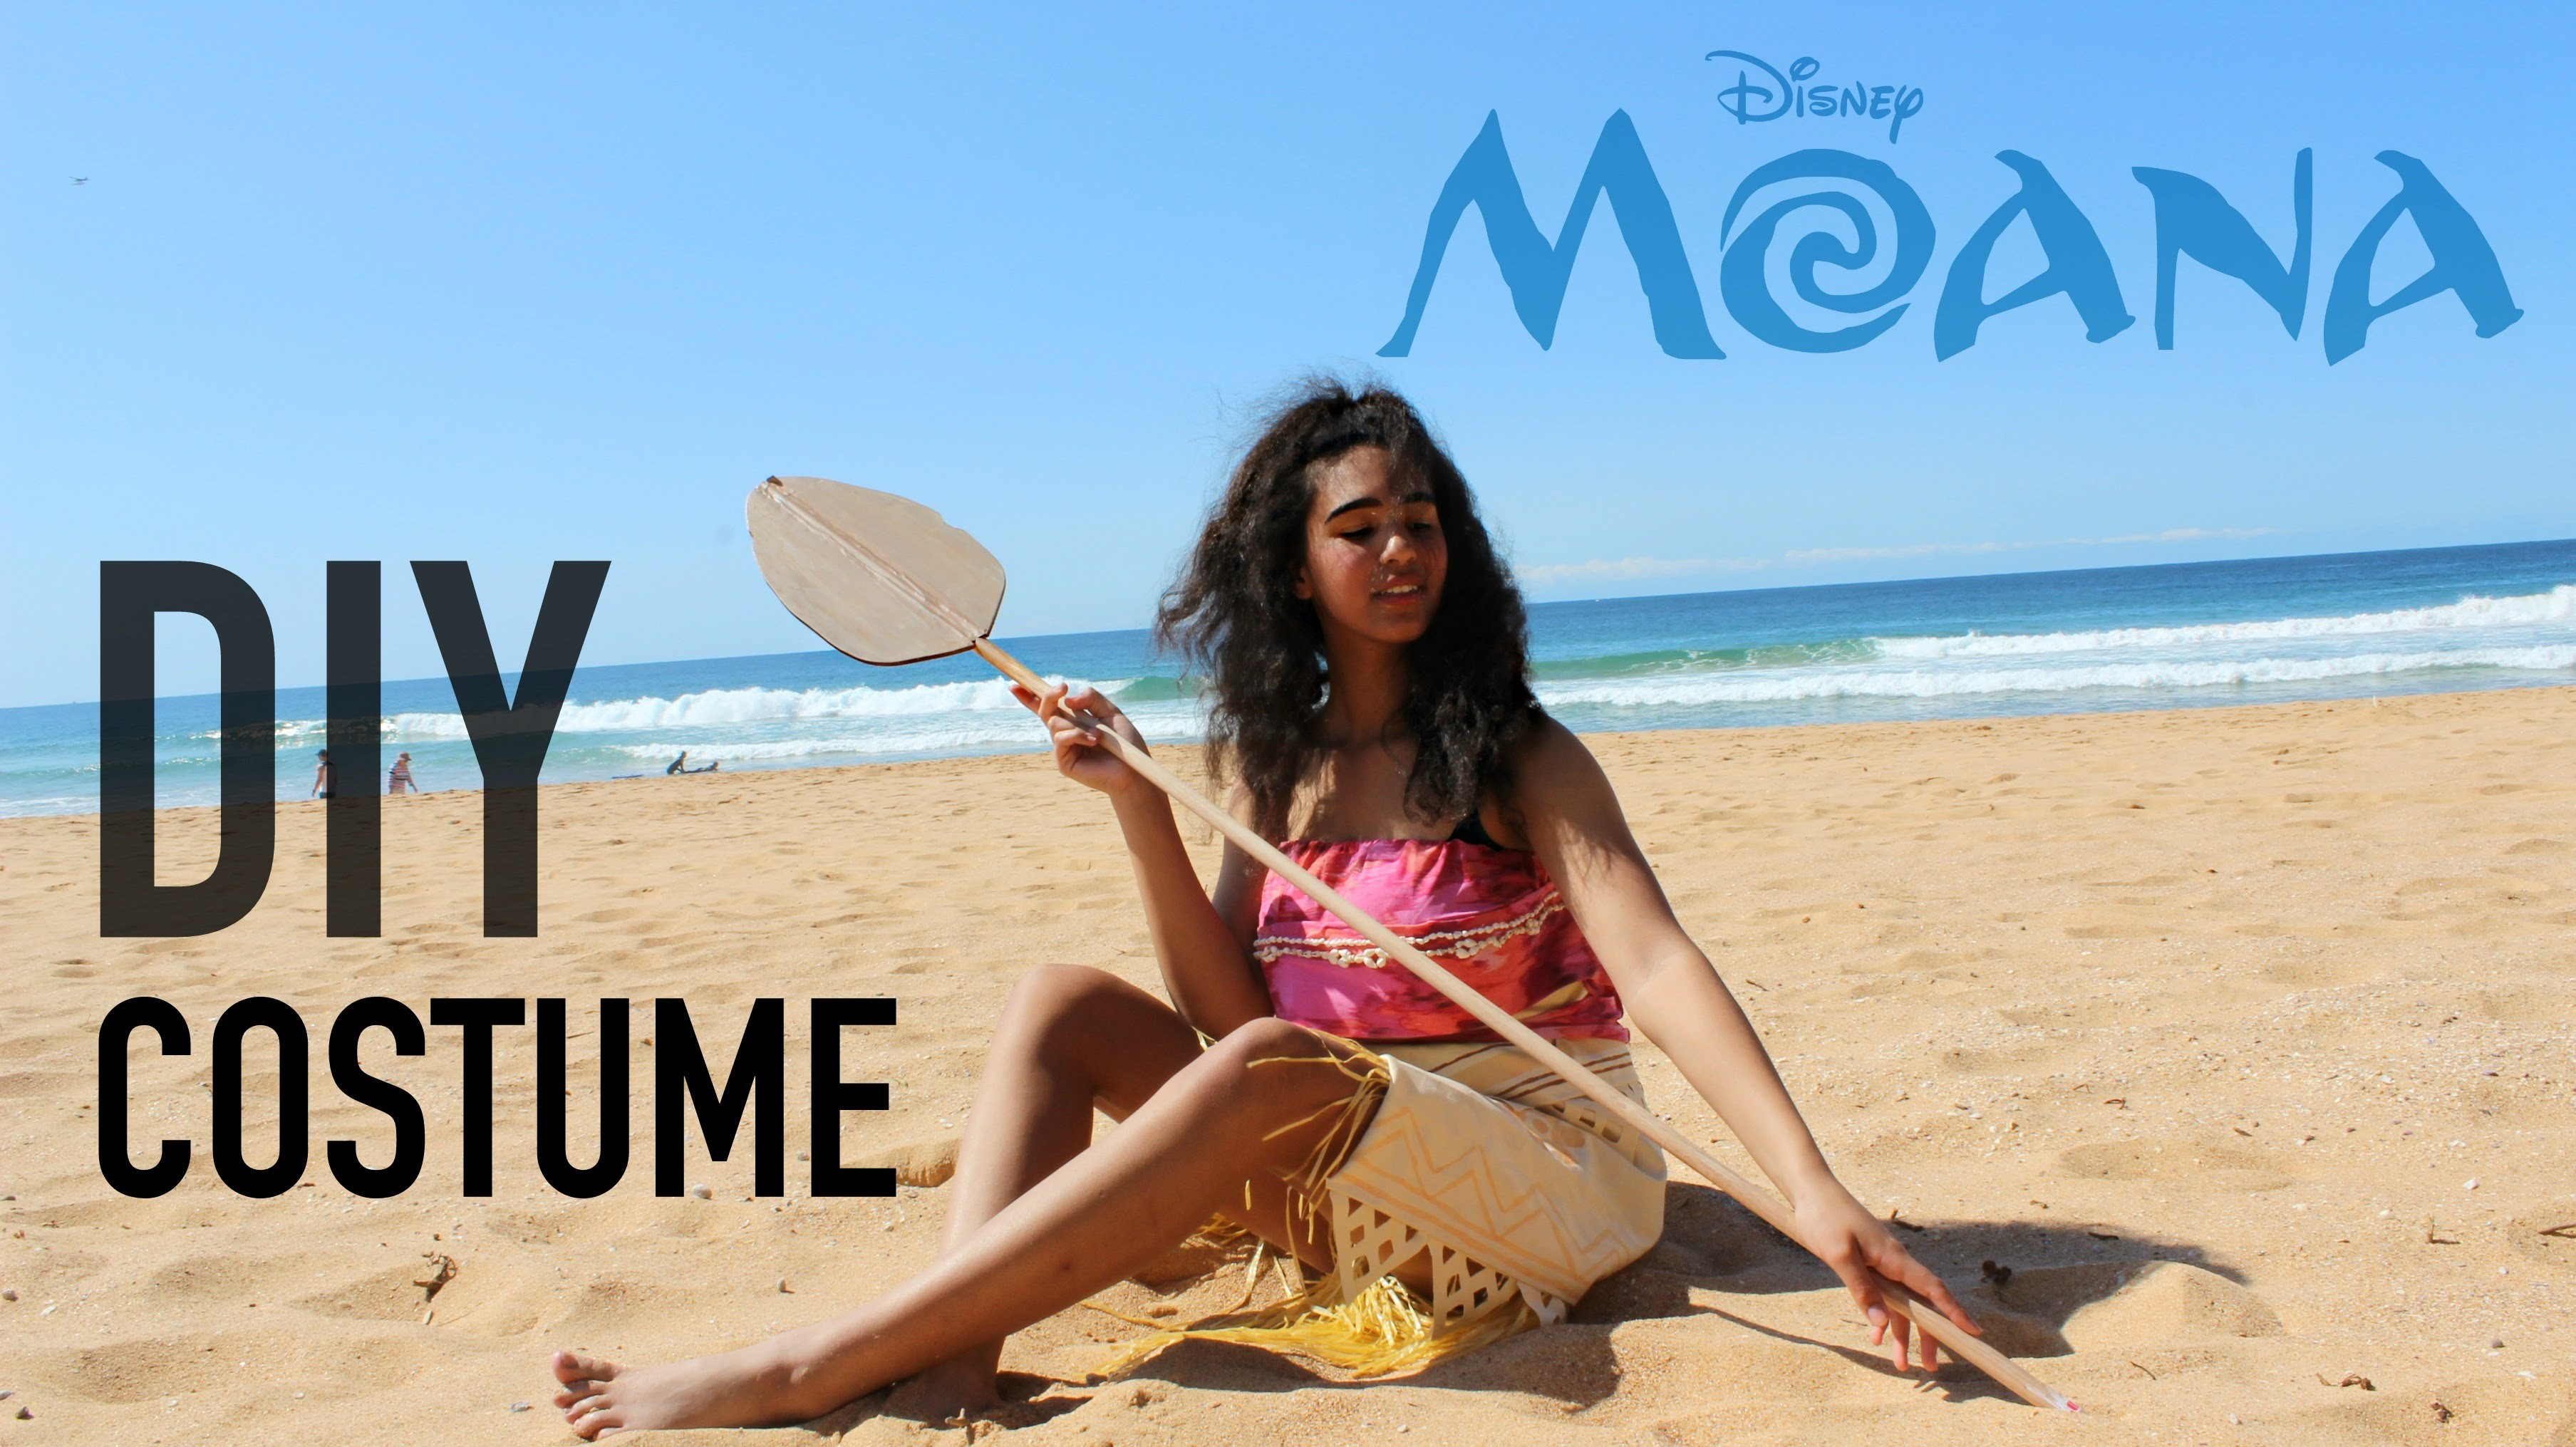 DIY Easy, No-Sew Moana Costume (Disney Princess Cosplay.Halloween Tutorial) | Natasha Rose